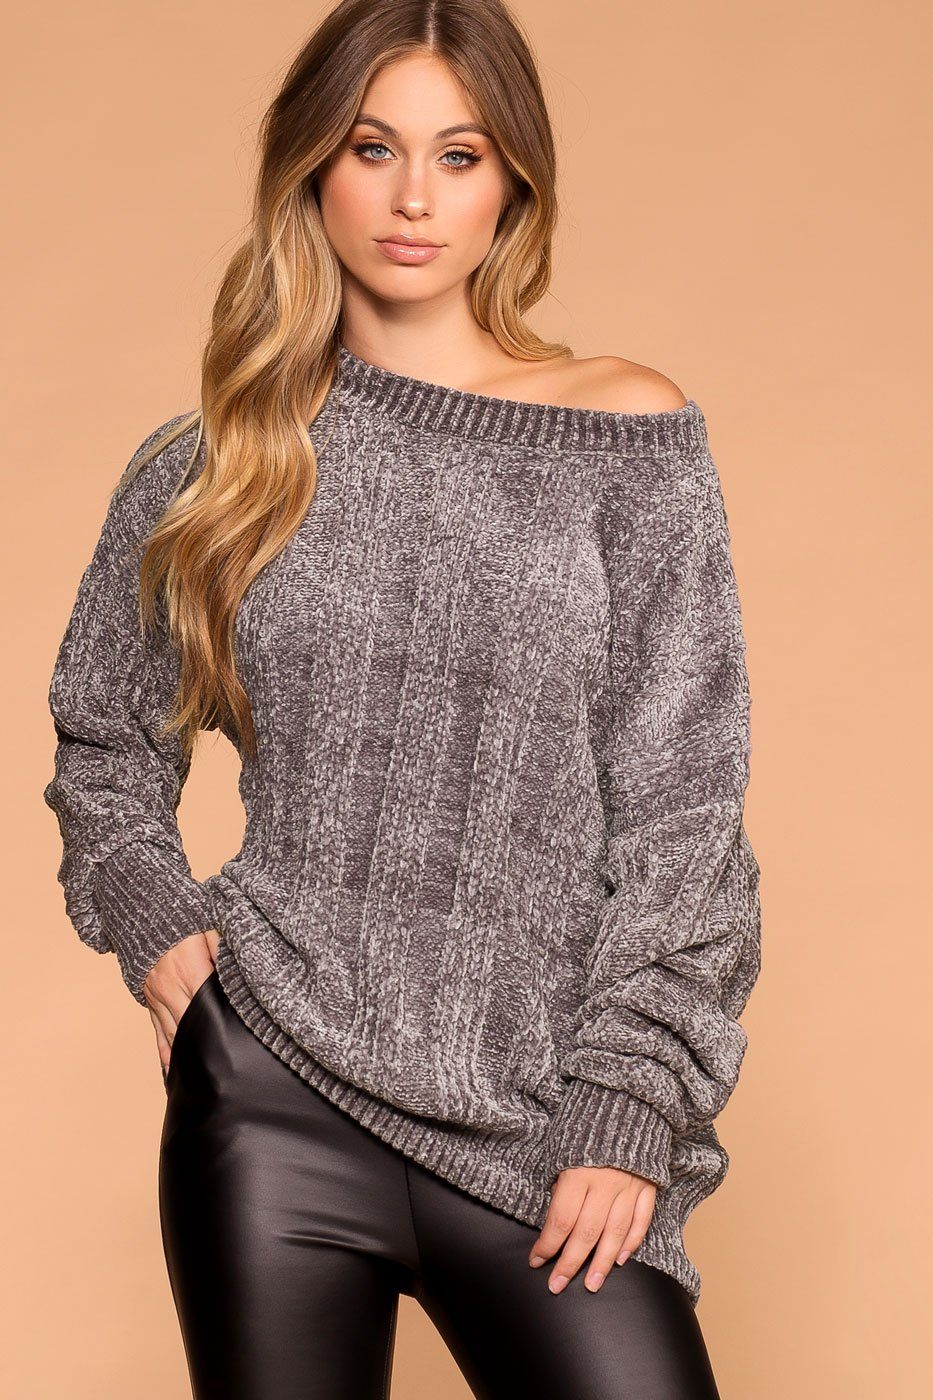 55dacc9095908c Fawna Silver Chenille Knit Sweater